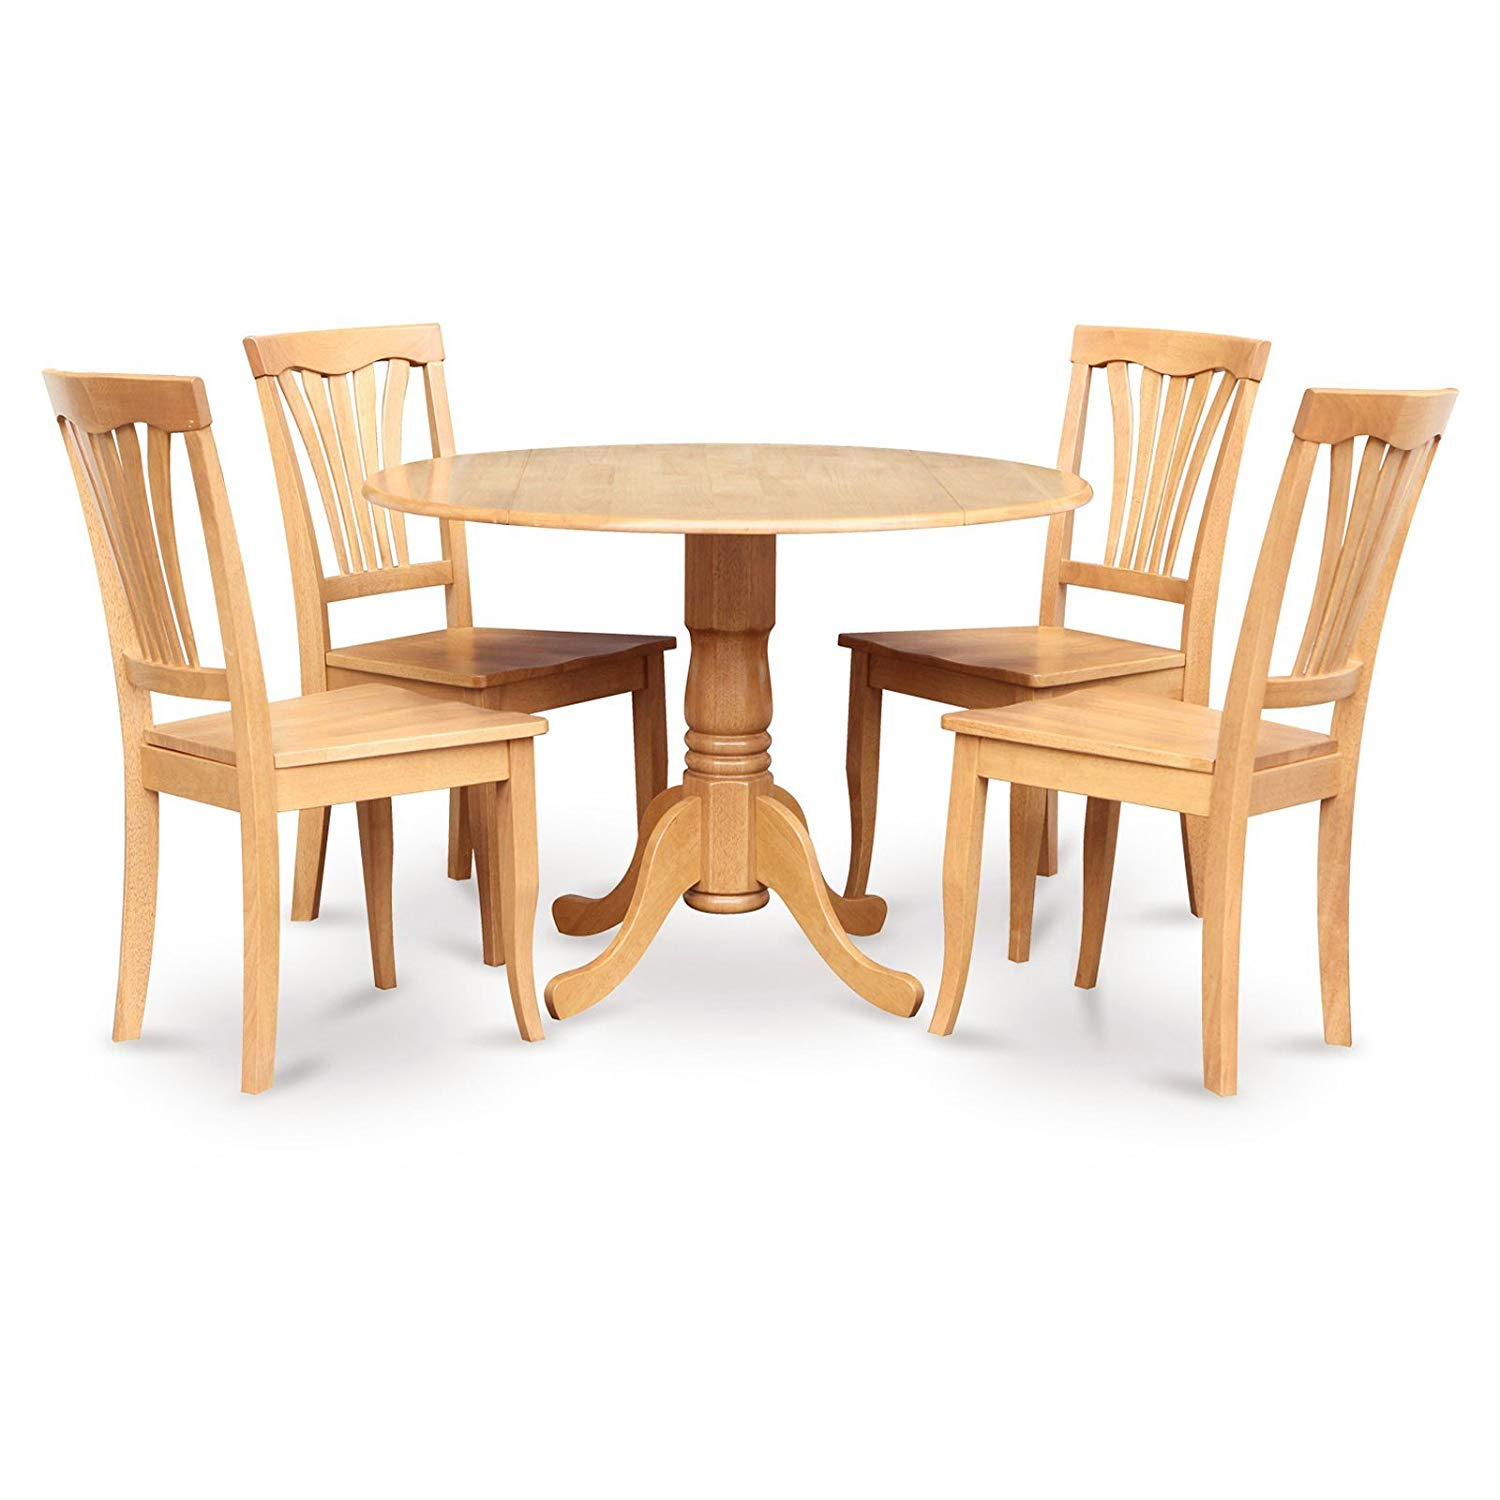 Buy 5 Piece Drop Leaf Dining Table Set With Avon Wooden Seat Chairs